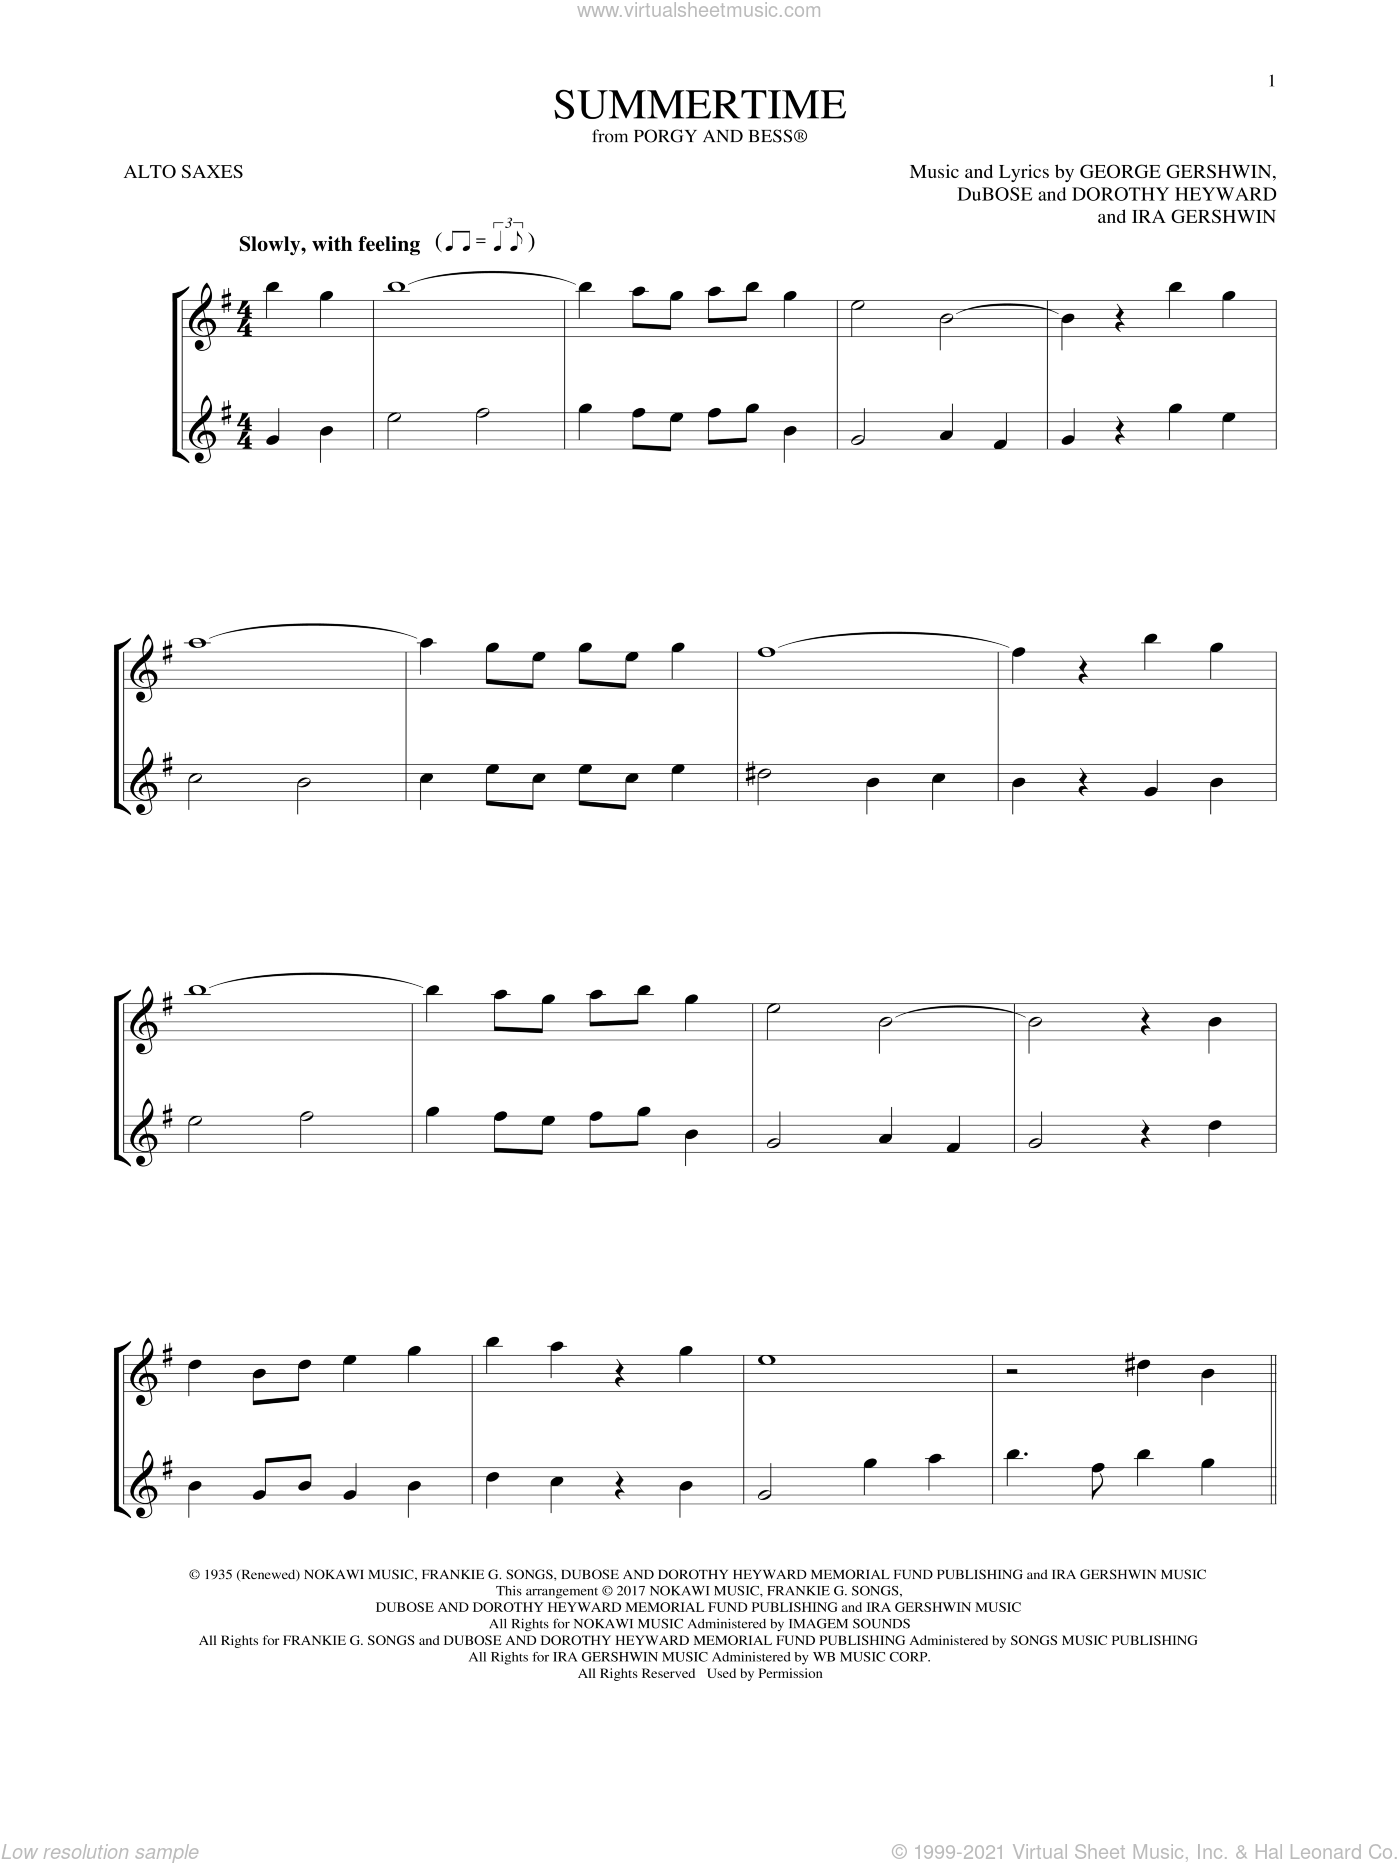 Summertime (from Porgy and Bess) sheet music for two alto saxophones (duets) by George Gershwin, Dorothy Heyward, DuBose Heyward and Ira Gershwin, intermediate skill level